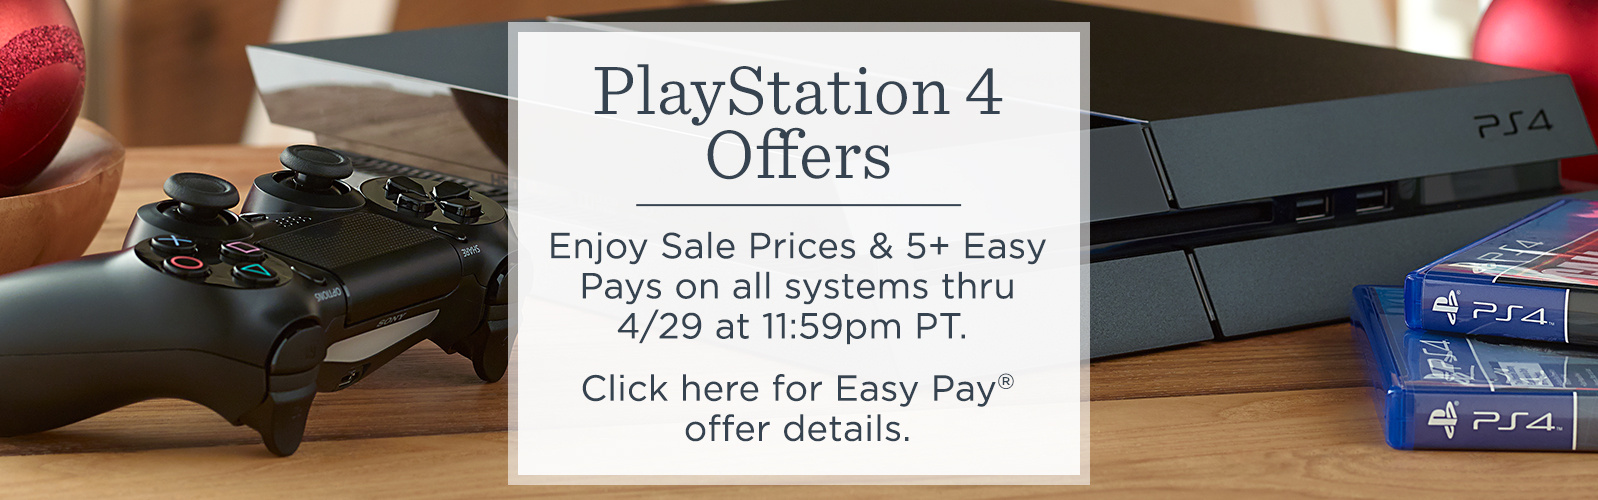 PlayStation 4 Offers.  Enjoy Sale Prices & 5+ Easy Pays on all systems thru 4/29 at 11:59pm PT.  Click here for Easy Pay® offer details.